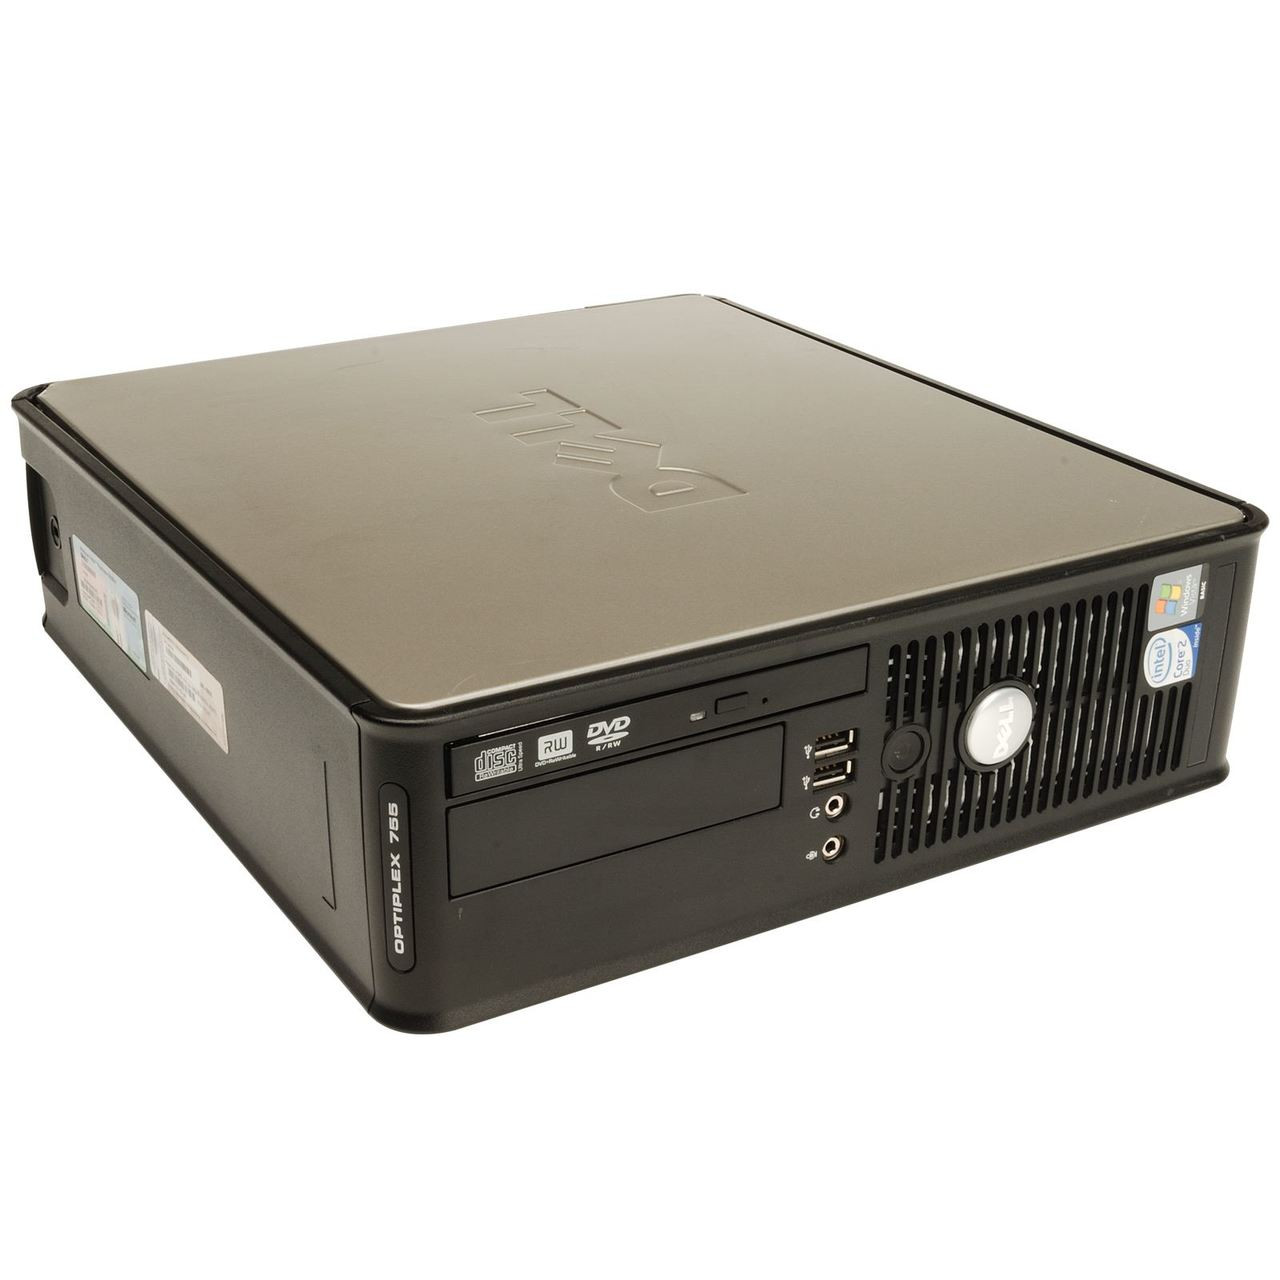 Dell Optiplex 755 SFF Intel Core 2 Duo 2.66GHz, 4GB Ram, 160GB HDD, DVD-RW, Windows 7 Pro 64 Desktop Computer